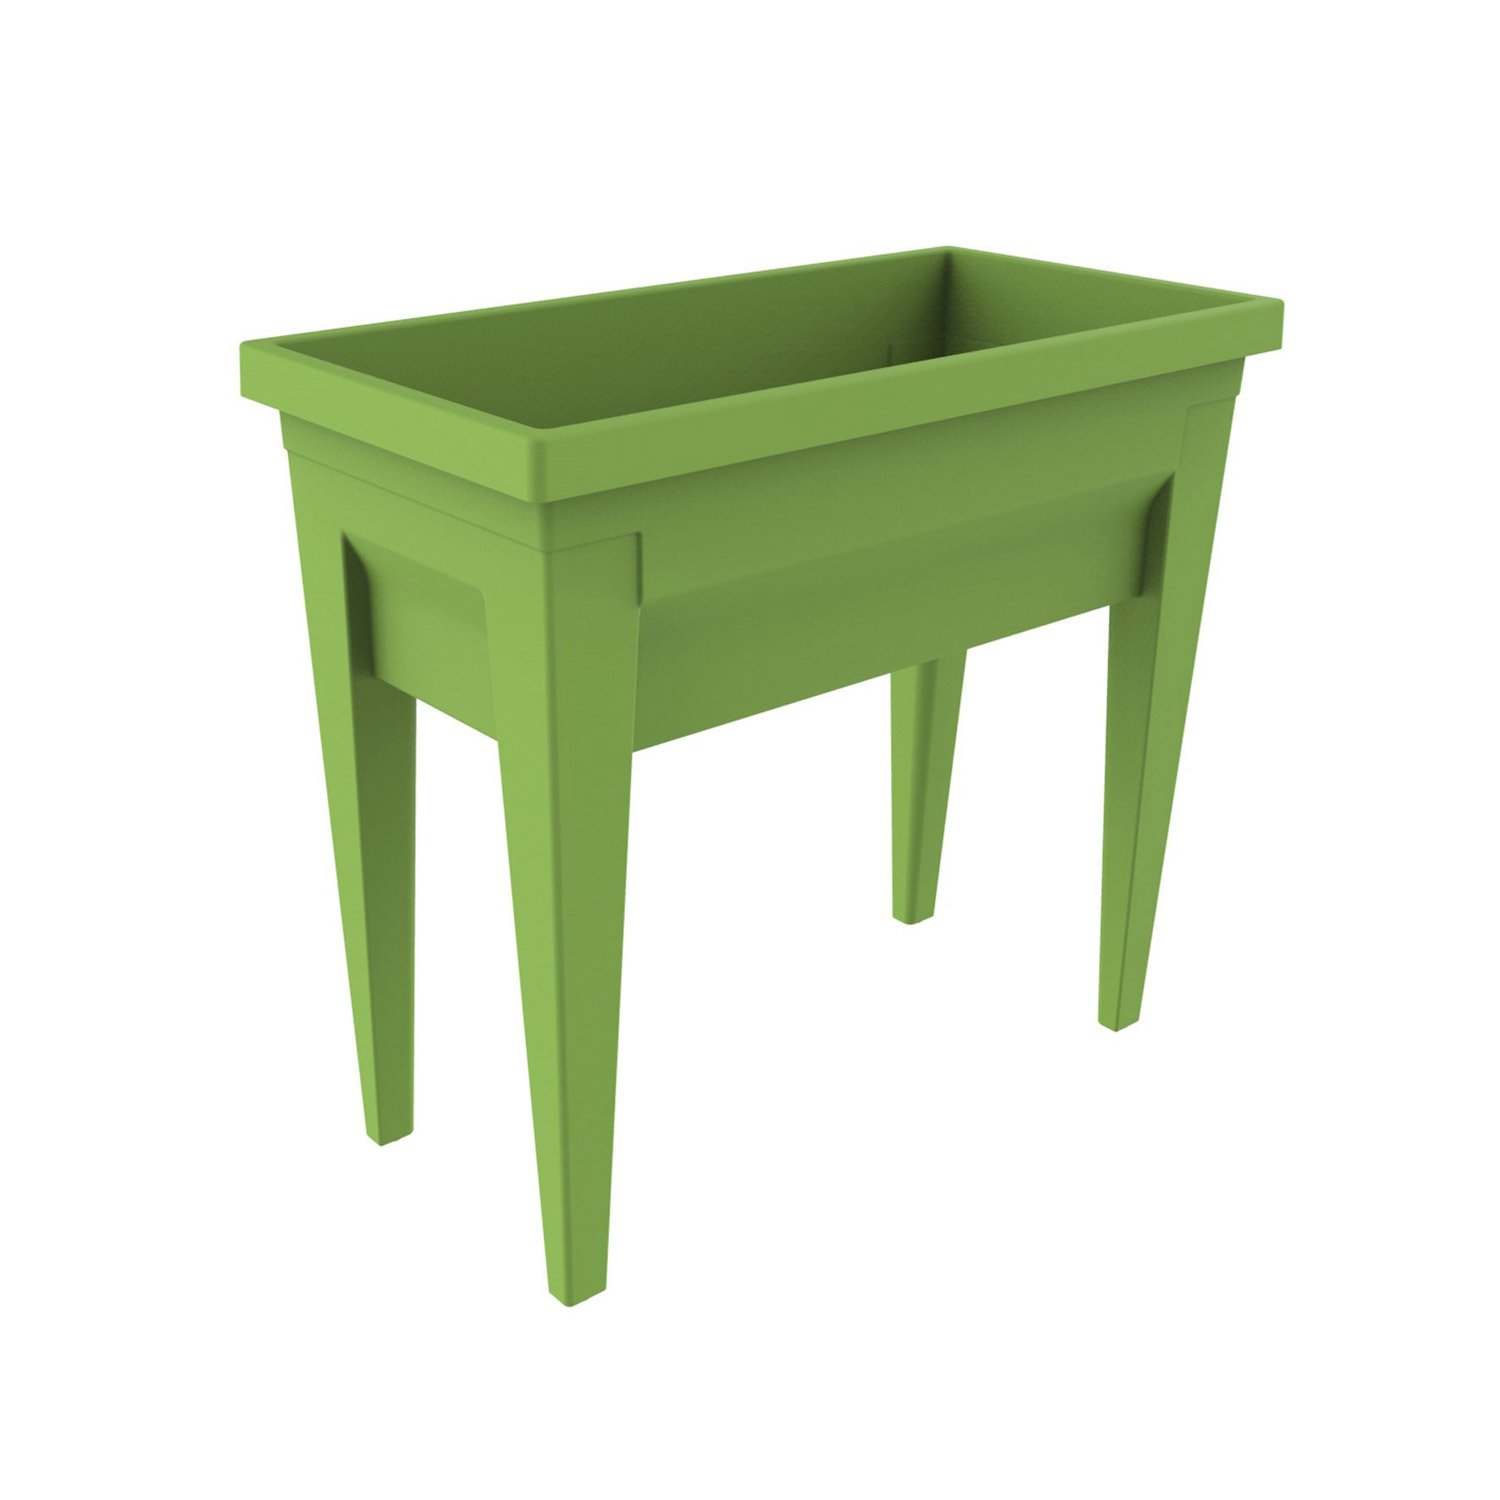 potager sur pieds eda plastiques vert x x cm leroy merlin. Black Bedroom Furniture Sets. Home Design Ideas